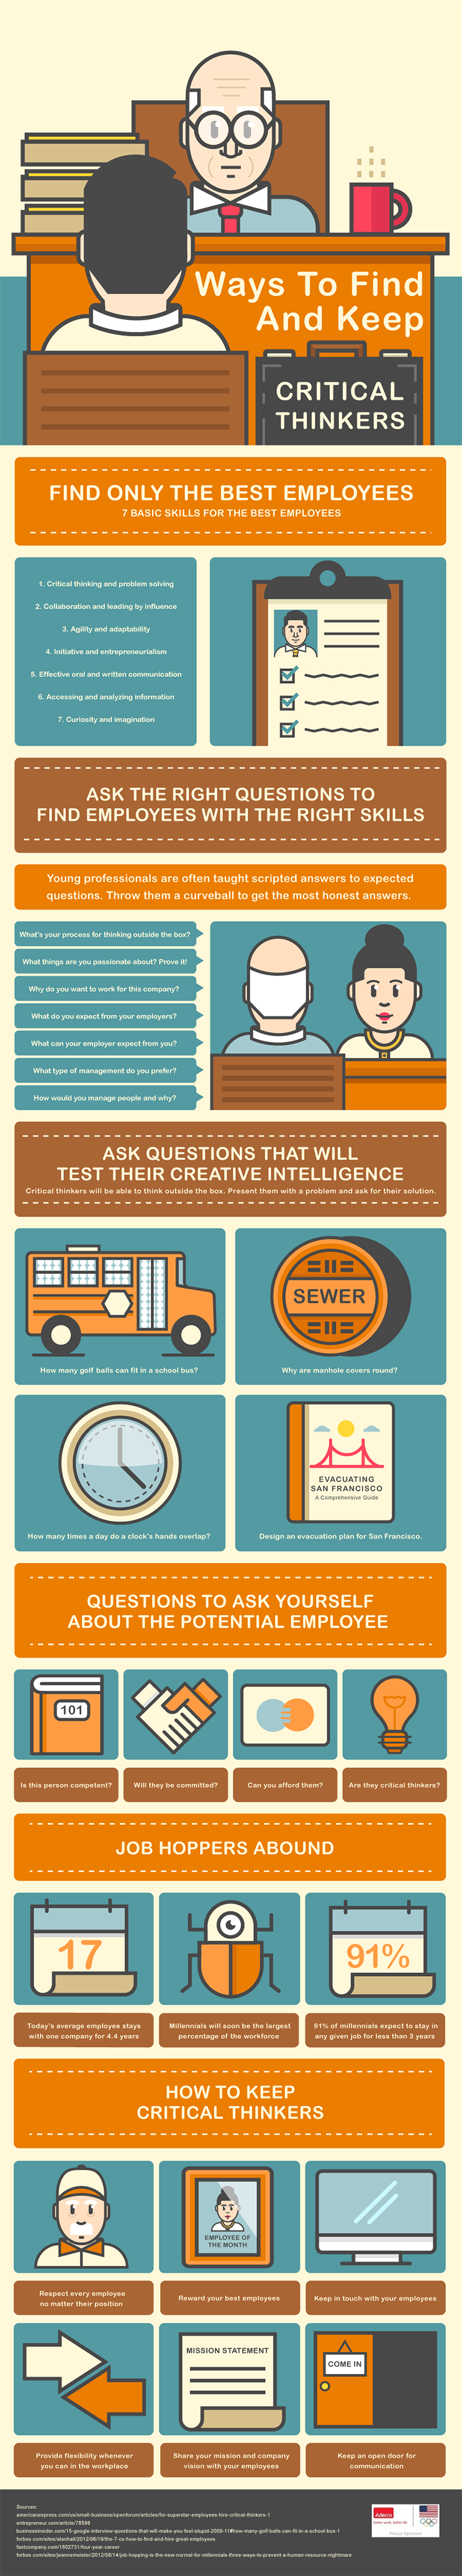 Ways to Find and Keep Critical Thinkers #infographic